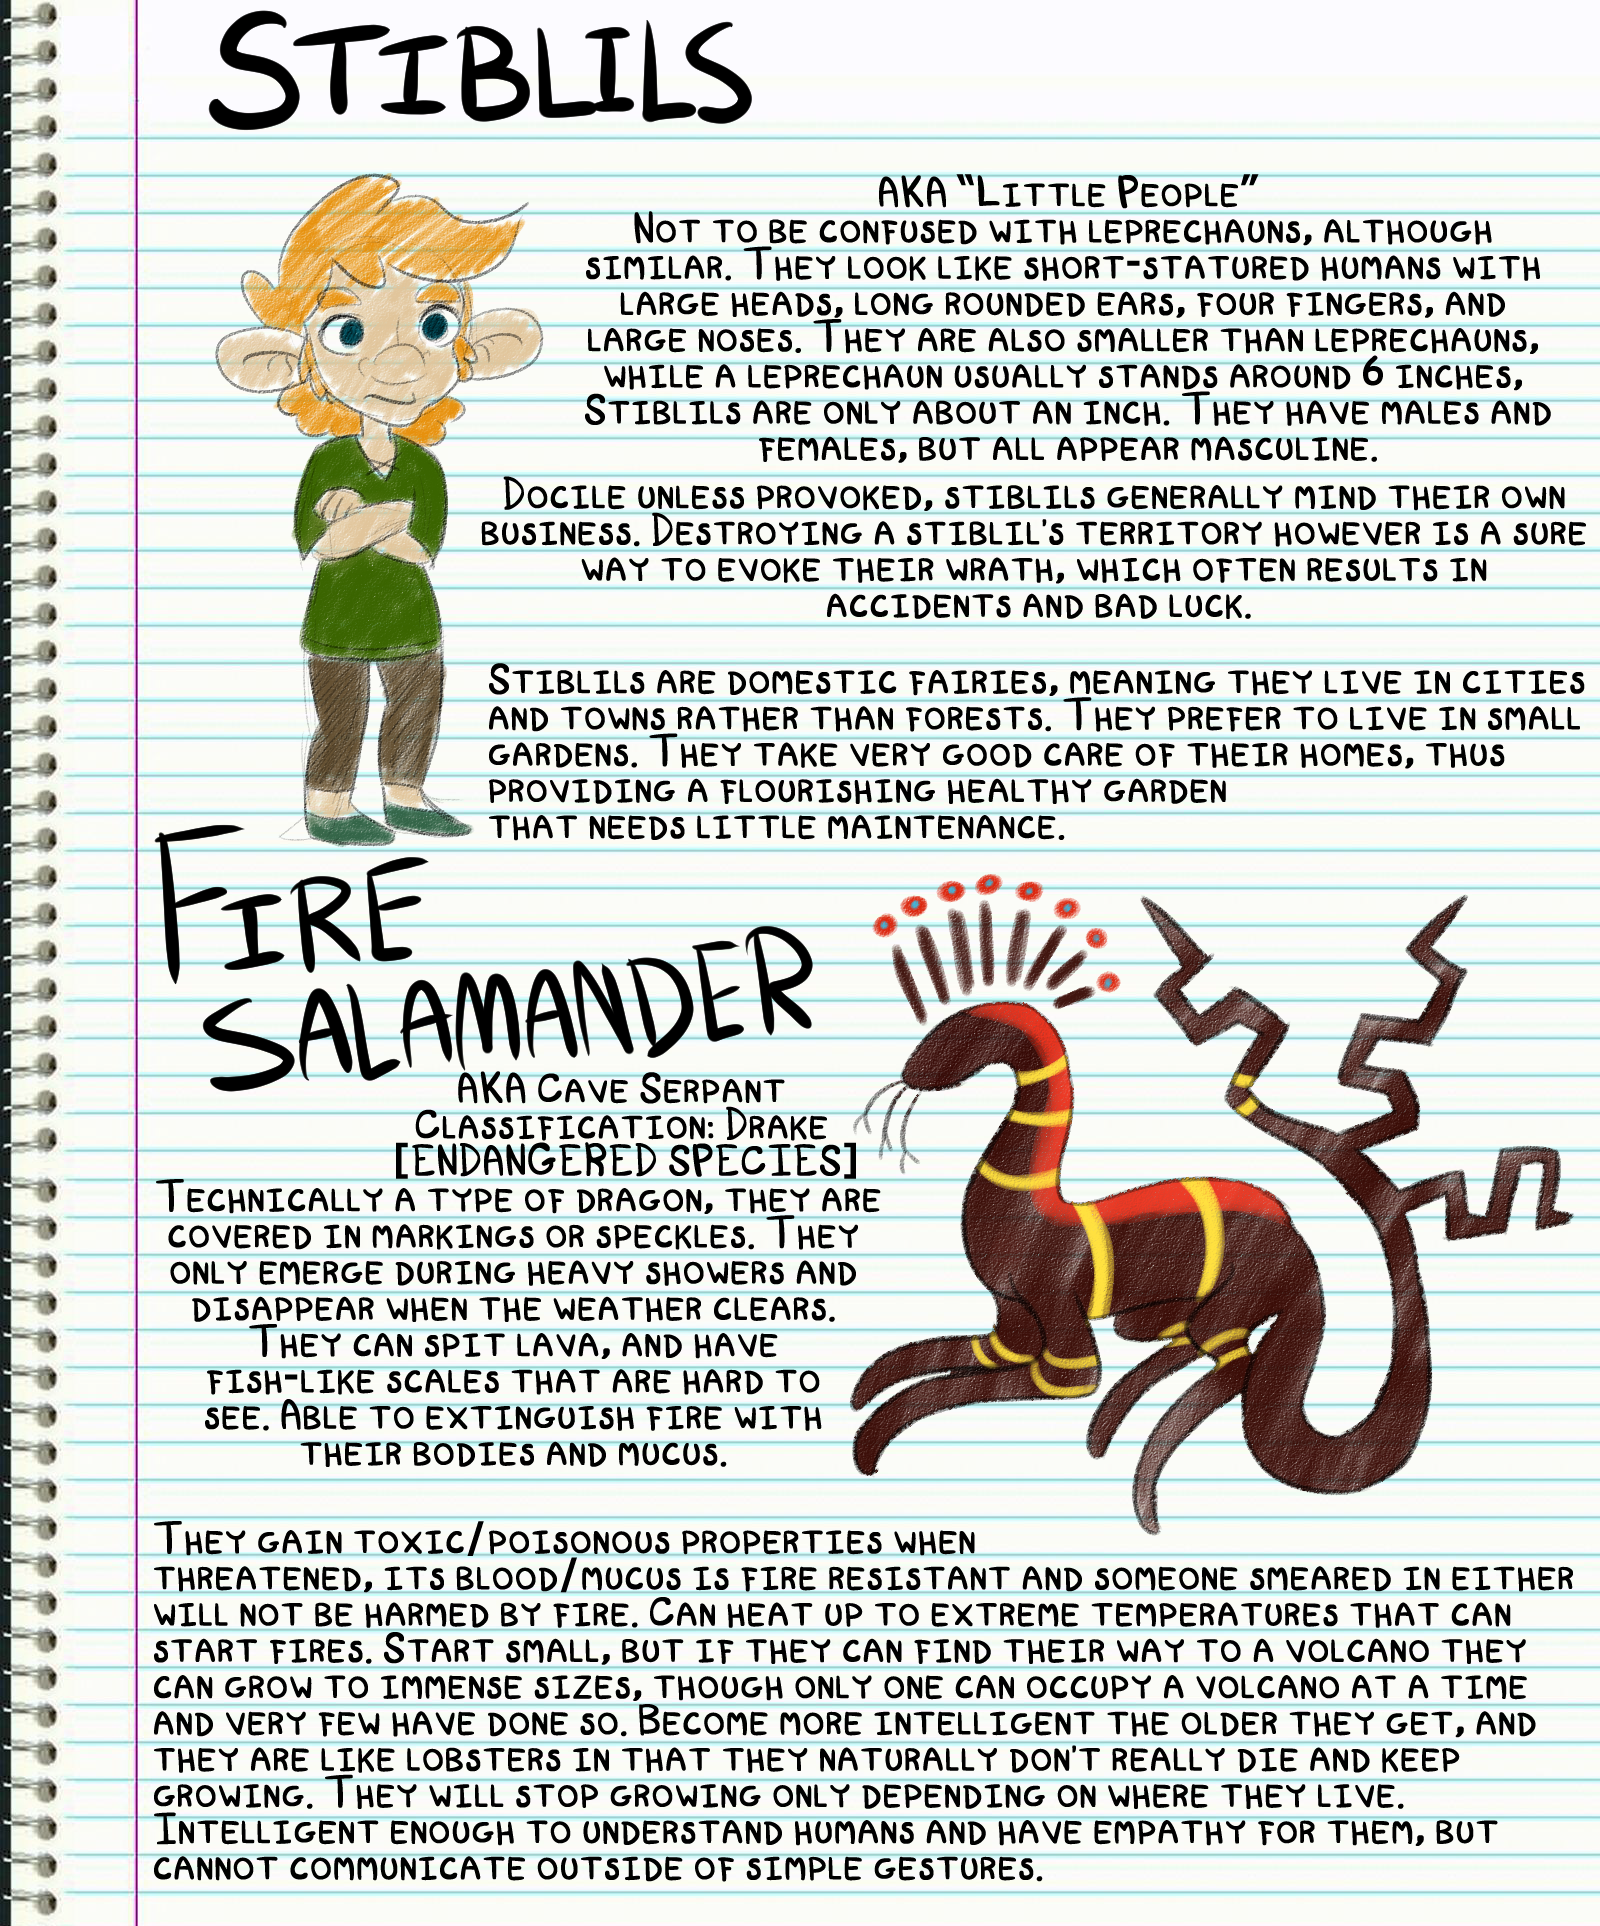 Journal Entry: Salamanders and Stiblils